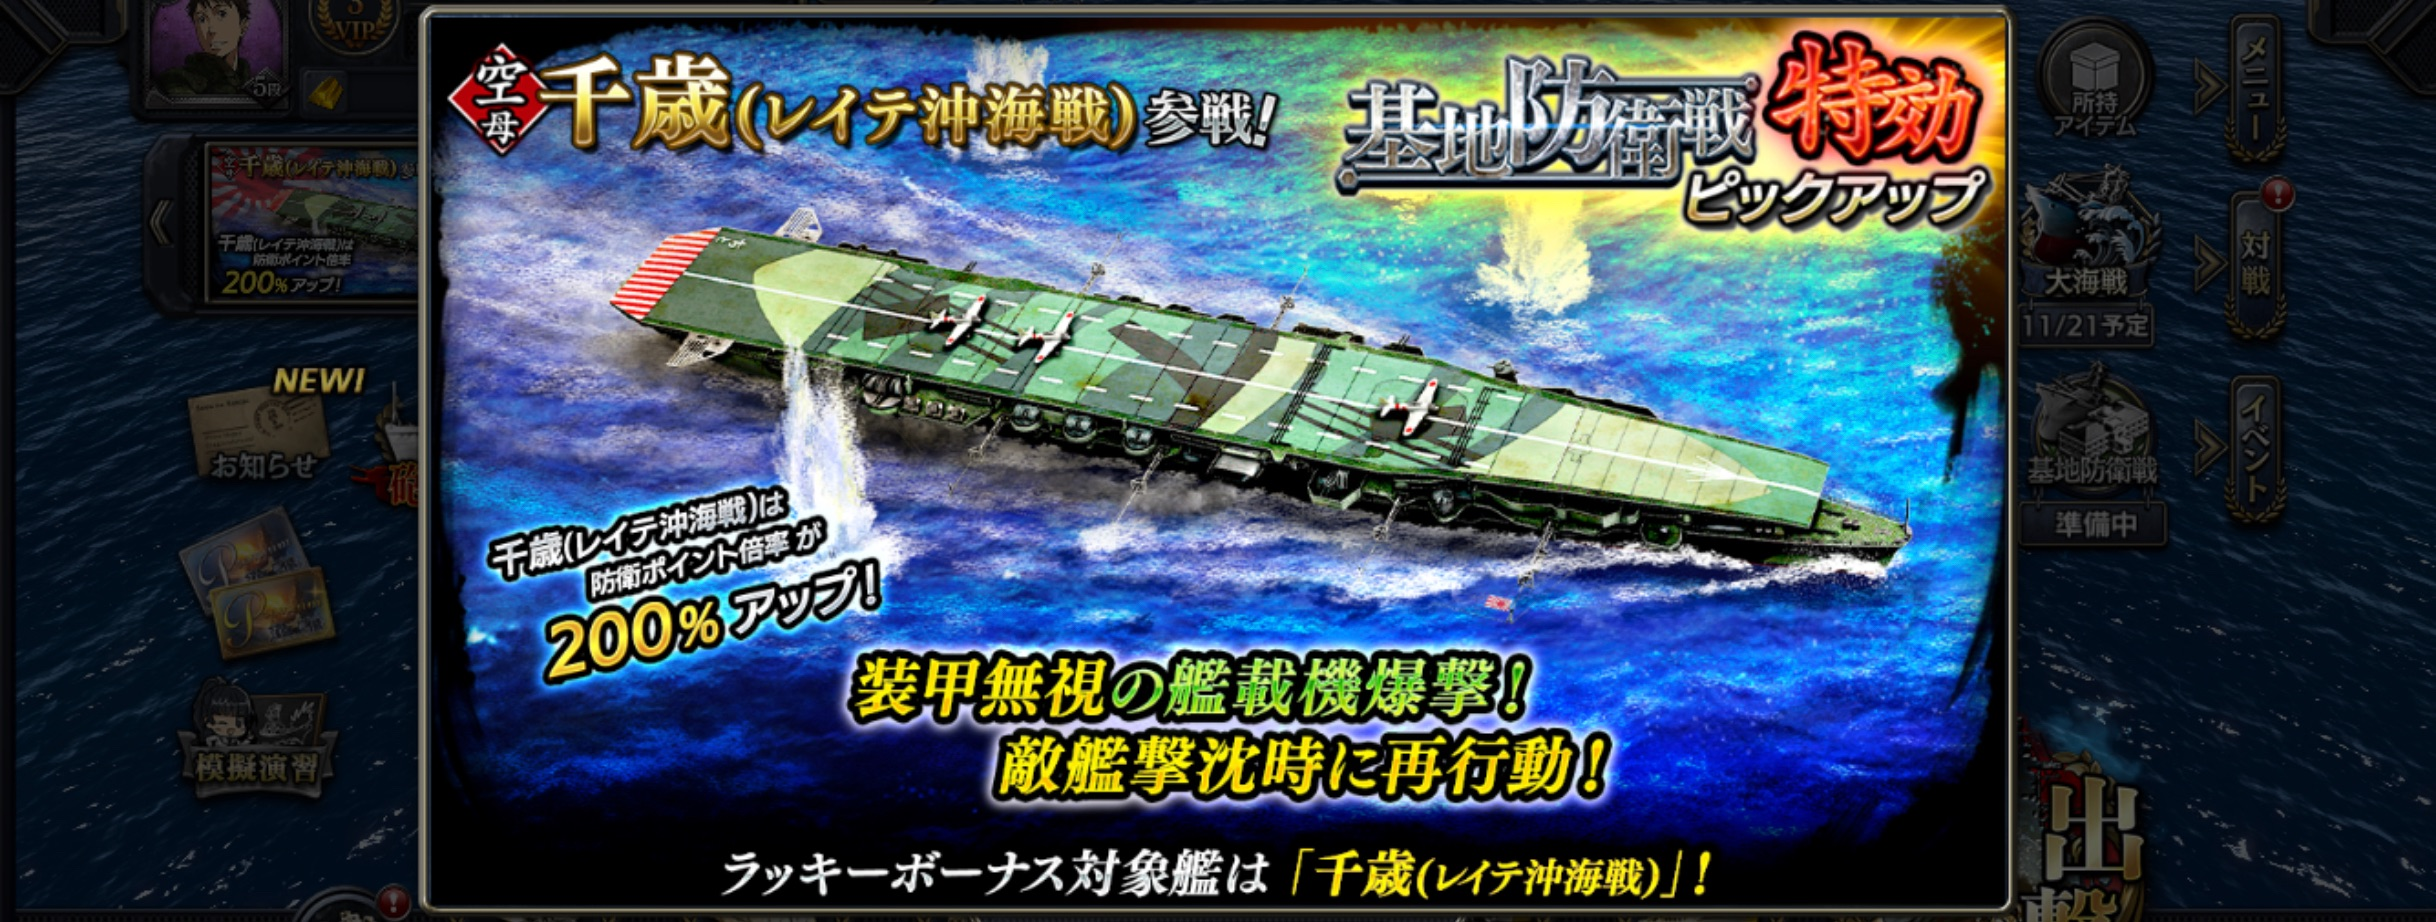 aircraft-carrier:ChitoseL